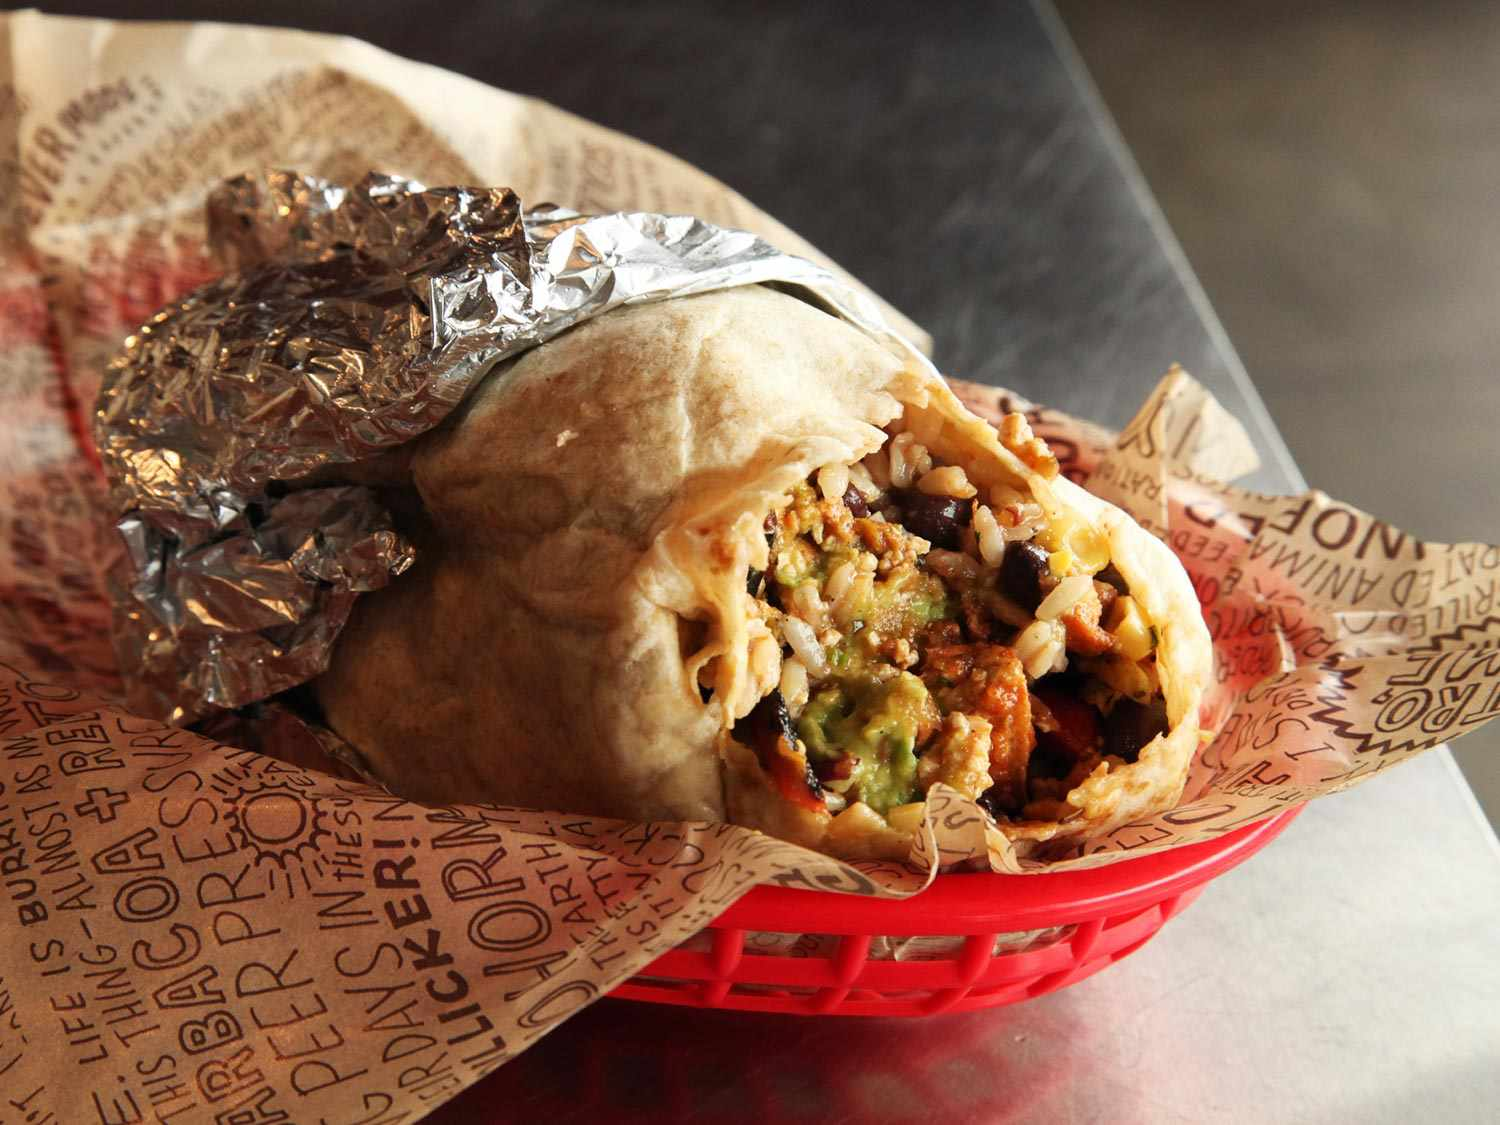 A sofritas burrito with a bite taken out of it in a red plastic tray at Chipotle